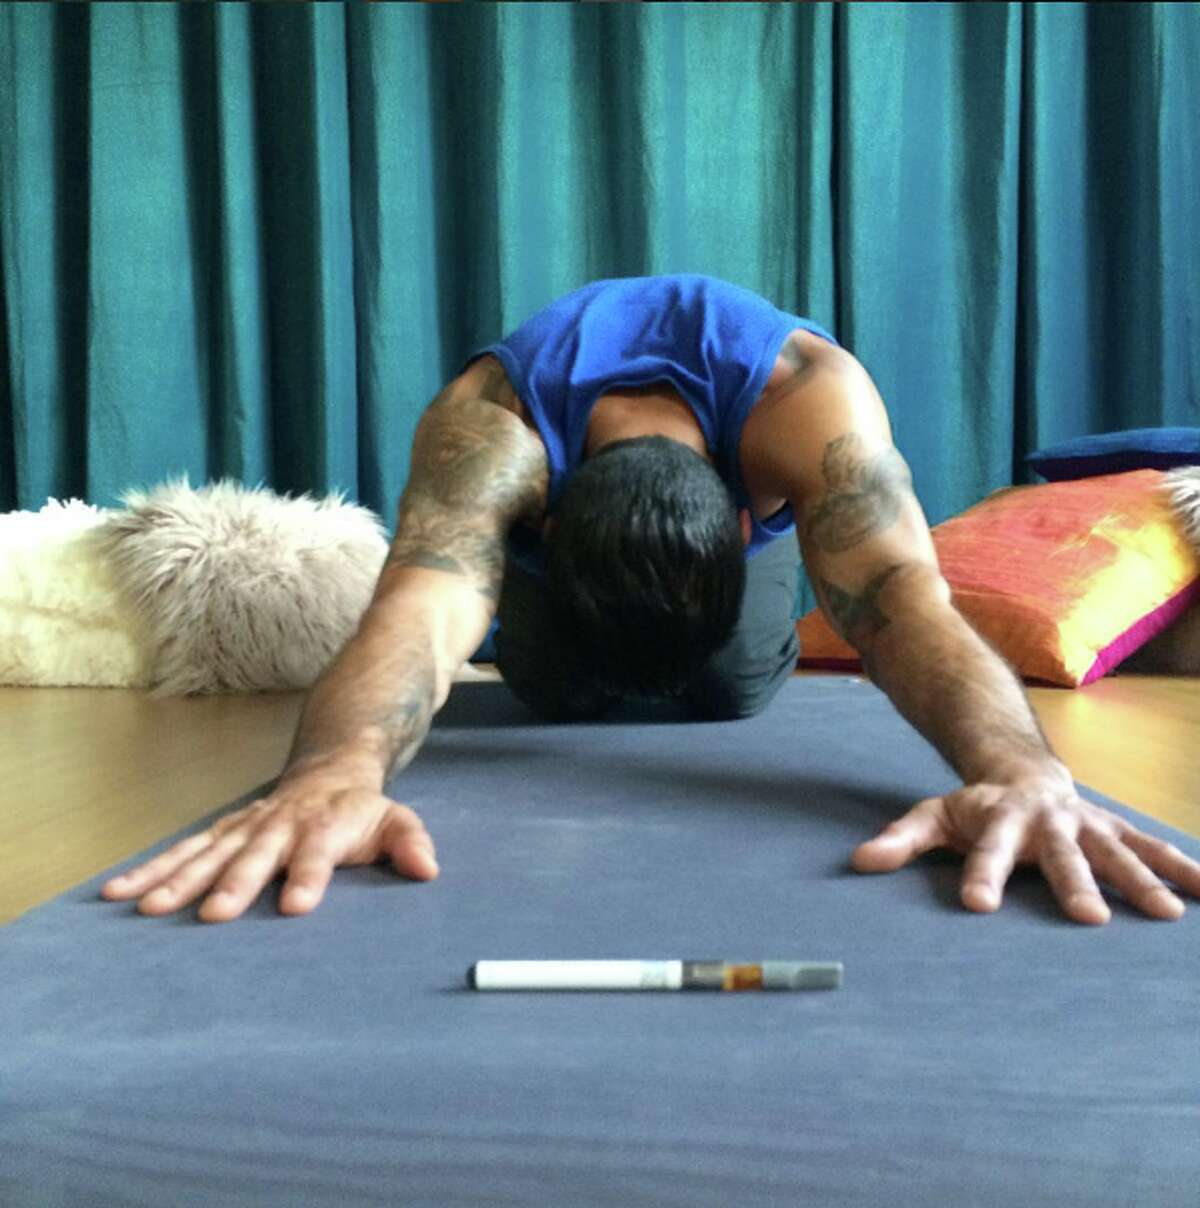 Ganga Yoga: A weekly cannabis-enhanced, relaxation-based hatha yoga that emphasizes relaxation, pain-relief, well-being, and the cultivation of inner peace. Ganja Yoga is based on mindfulness and good alignment for injury-prevention designed for any body.